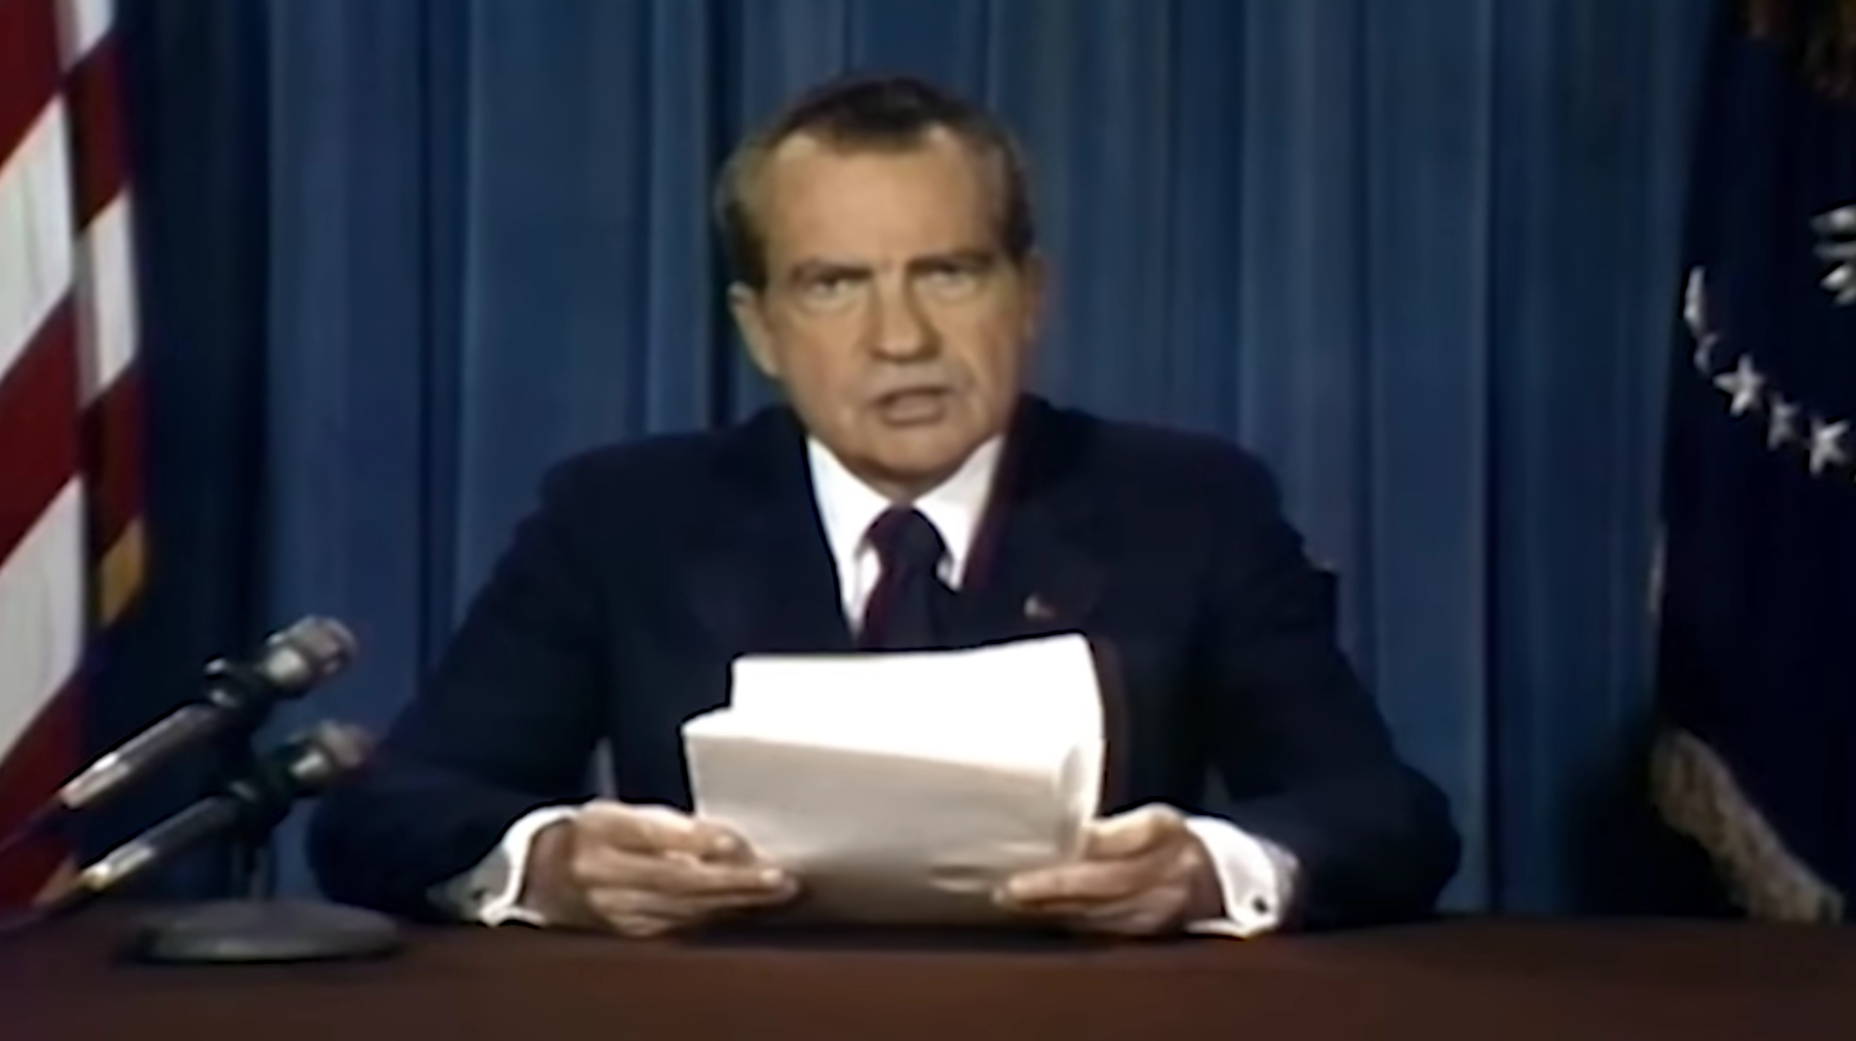 Deepfake Art Project Reimagines Nixon's Speech Had Apollo 11 Gone Horribly Wrong